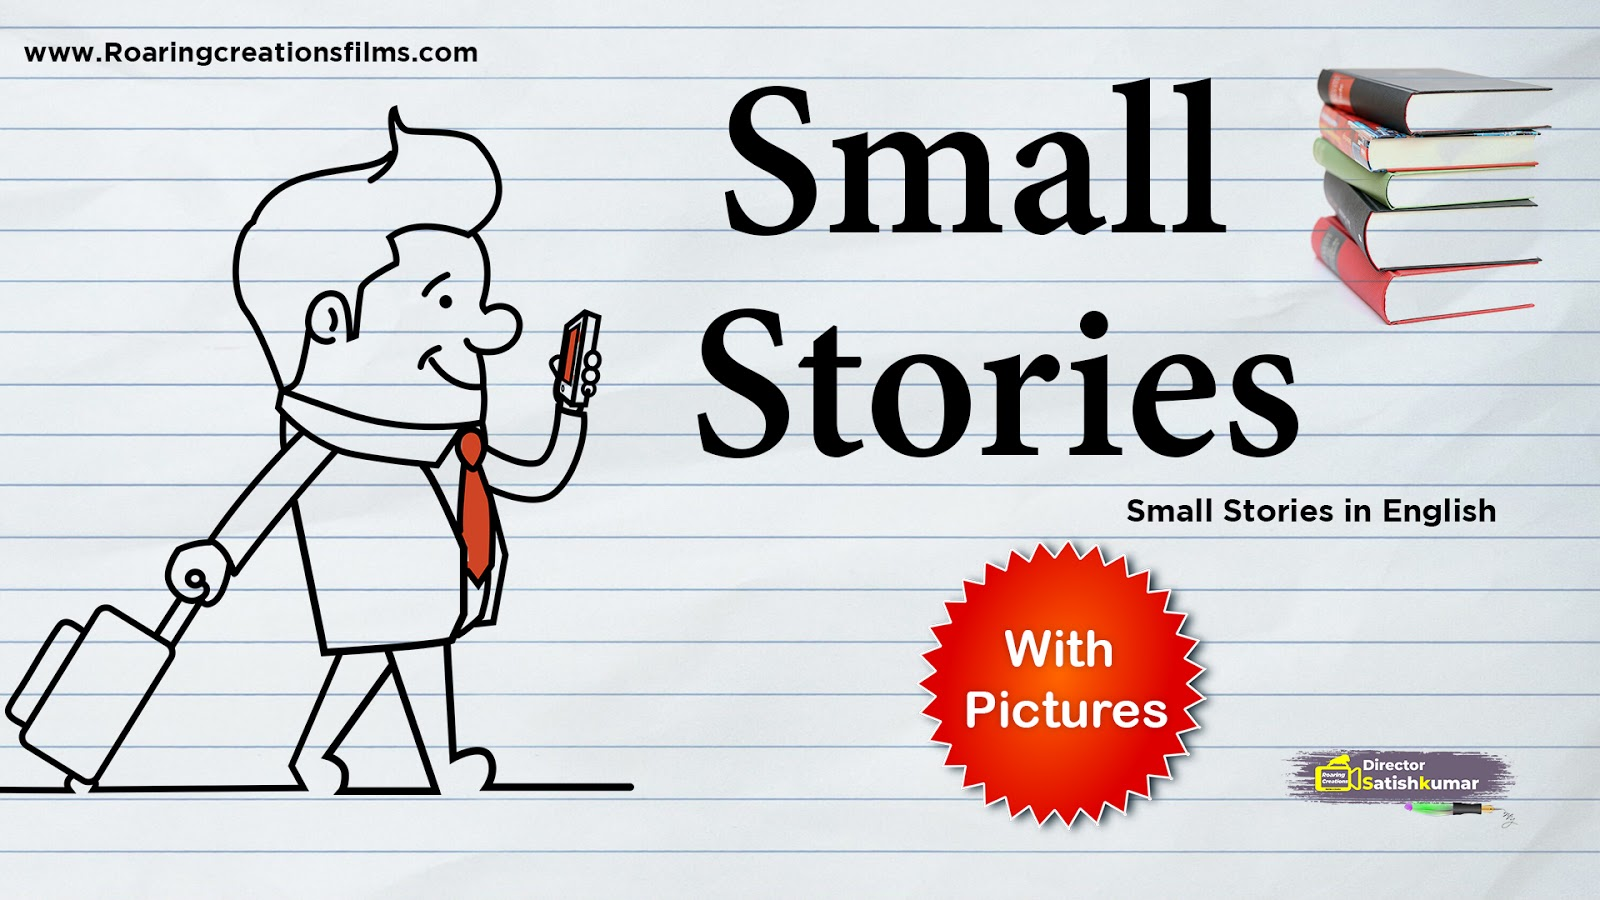 Small Stories in English - Small Stories